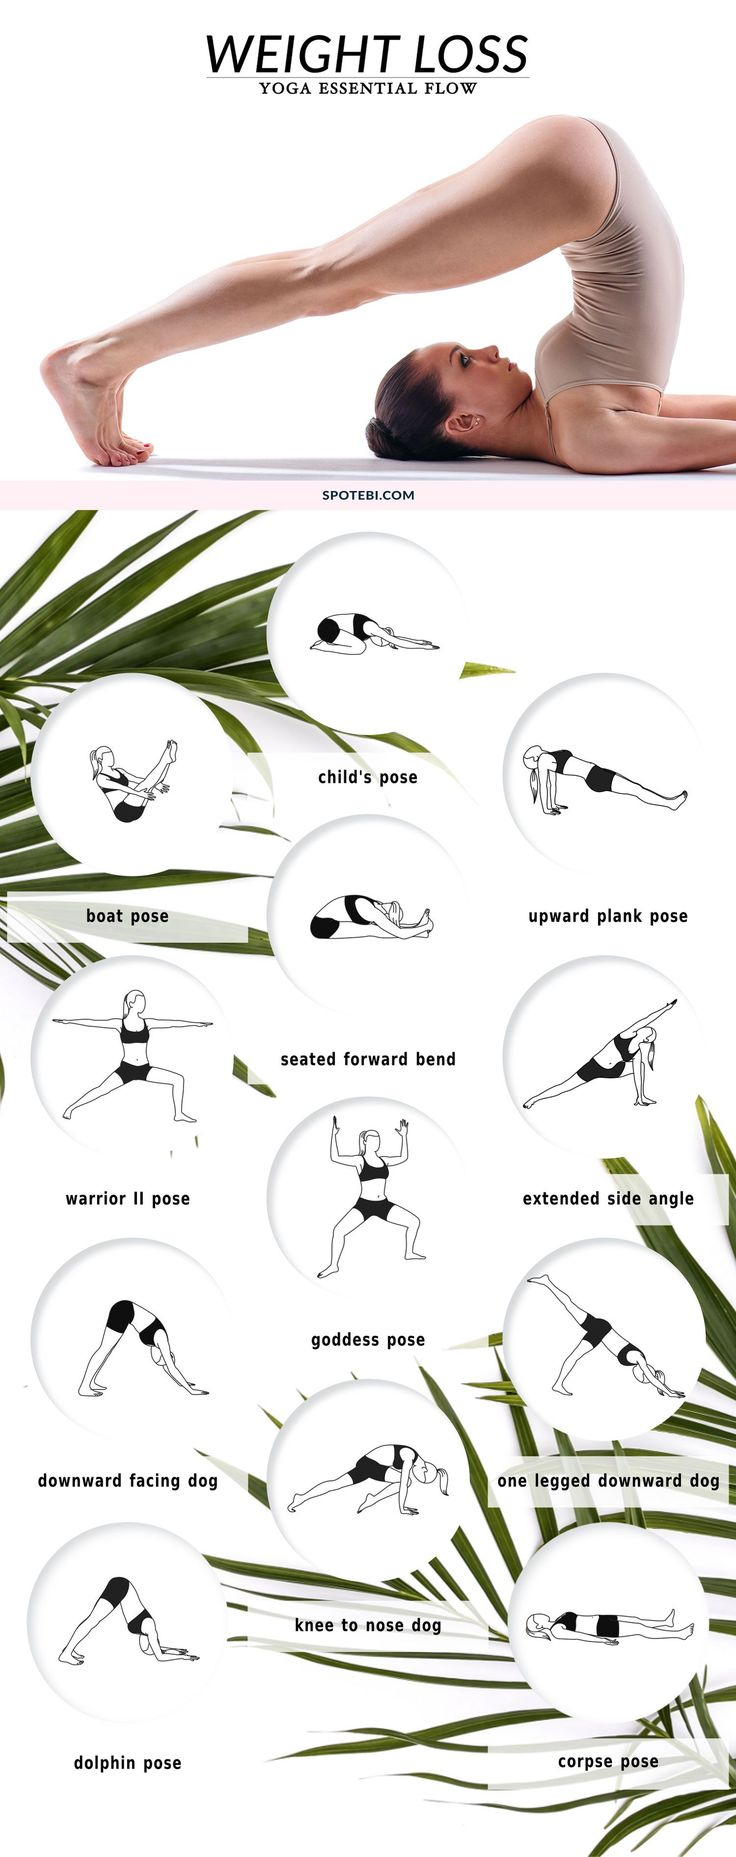 Try this 14-minute gentle yoga flow to increase your metabolism, strengthen the body and boost your calorie burn. These 12 easy and effective yoga poses for weight loss will help you tone your arms, flatten your belly, and slim down your legs! https://www.spotebi.com/yoga-sequences/weight-loss-flow/